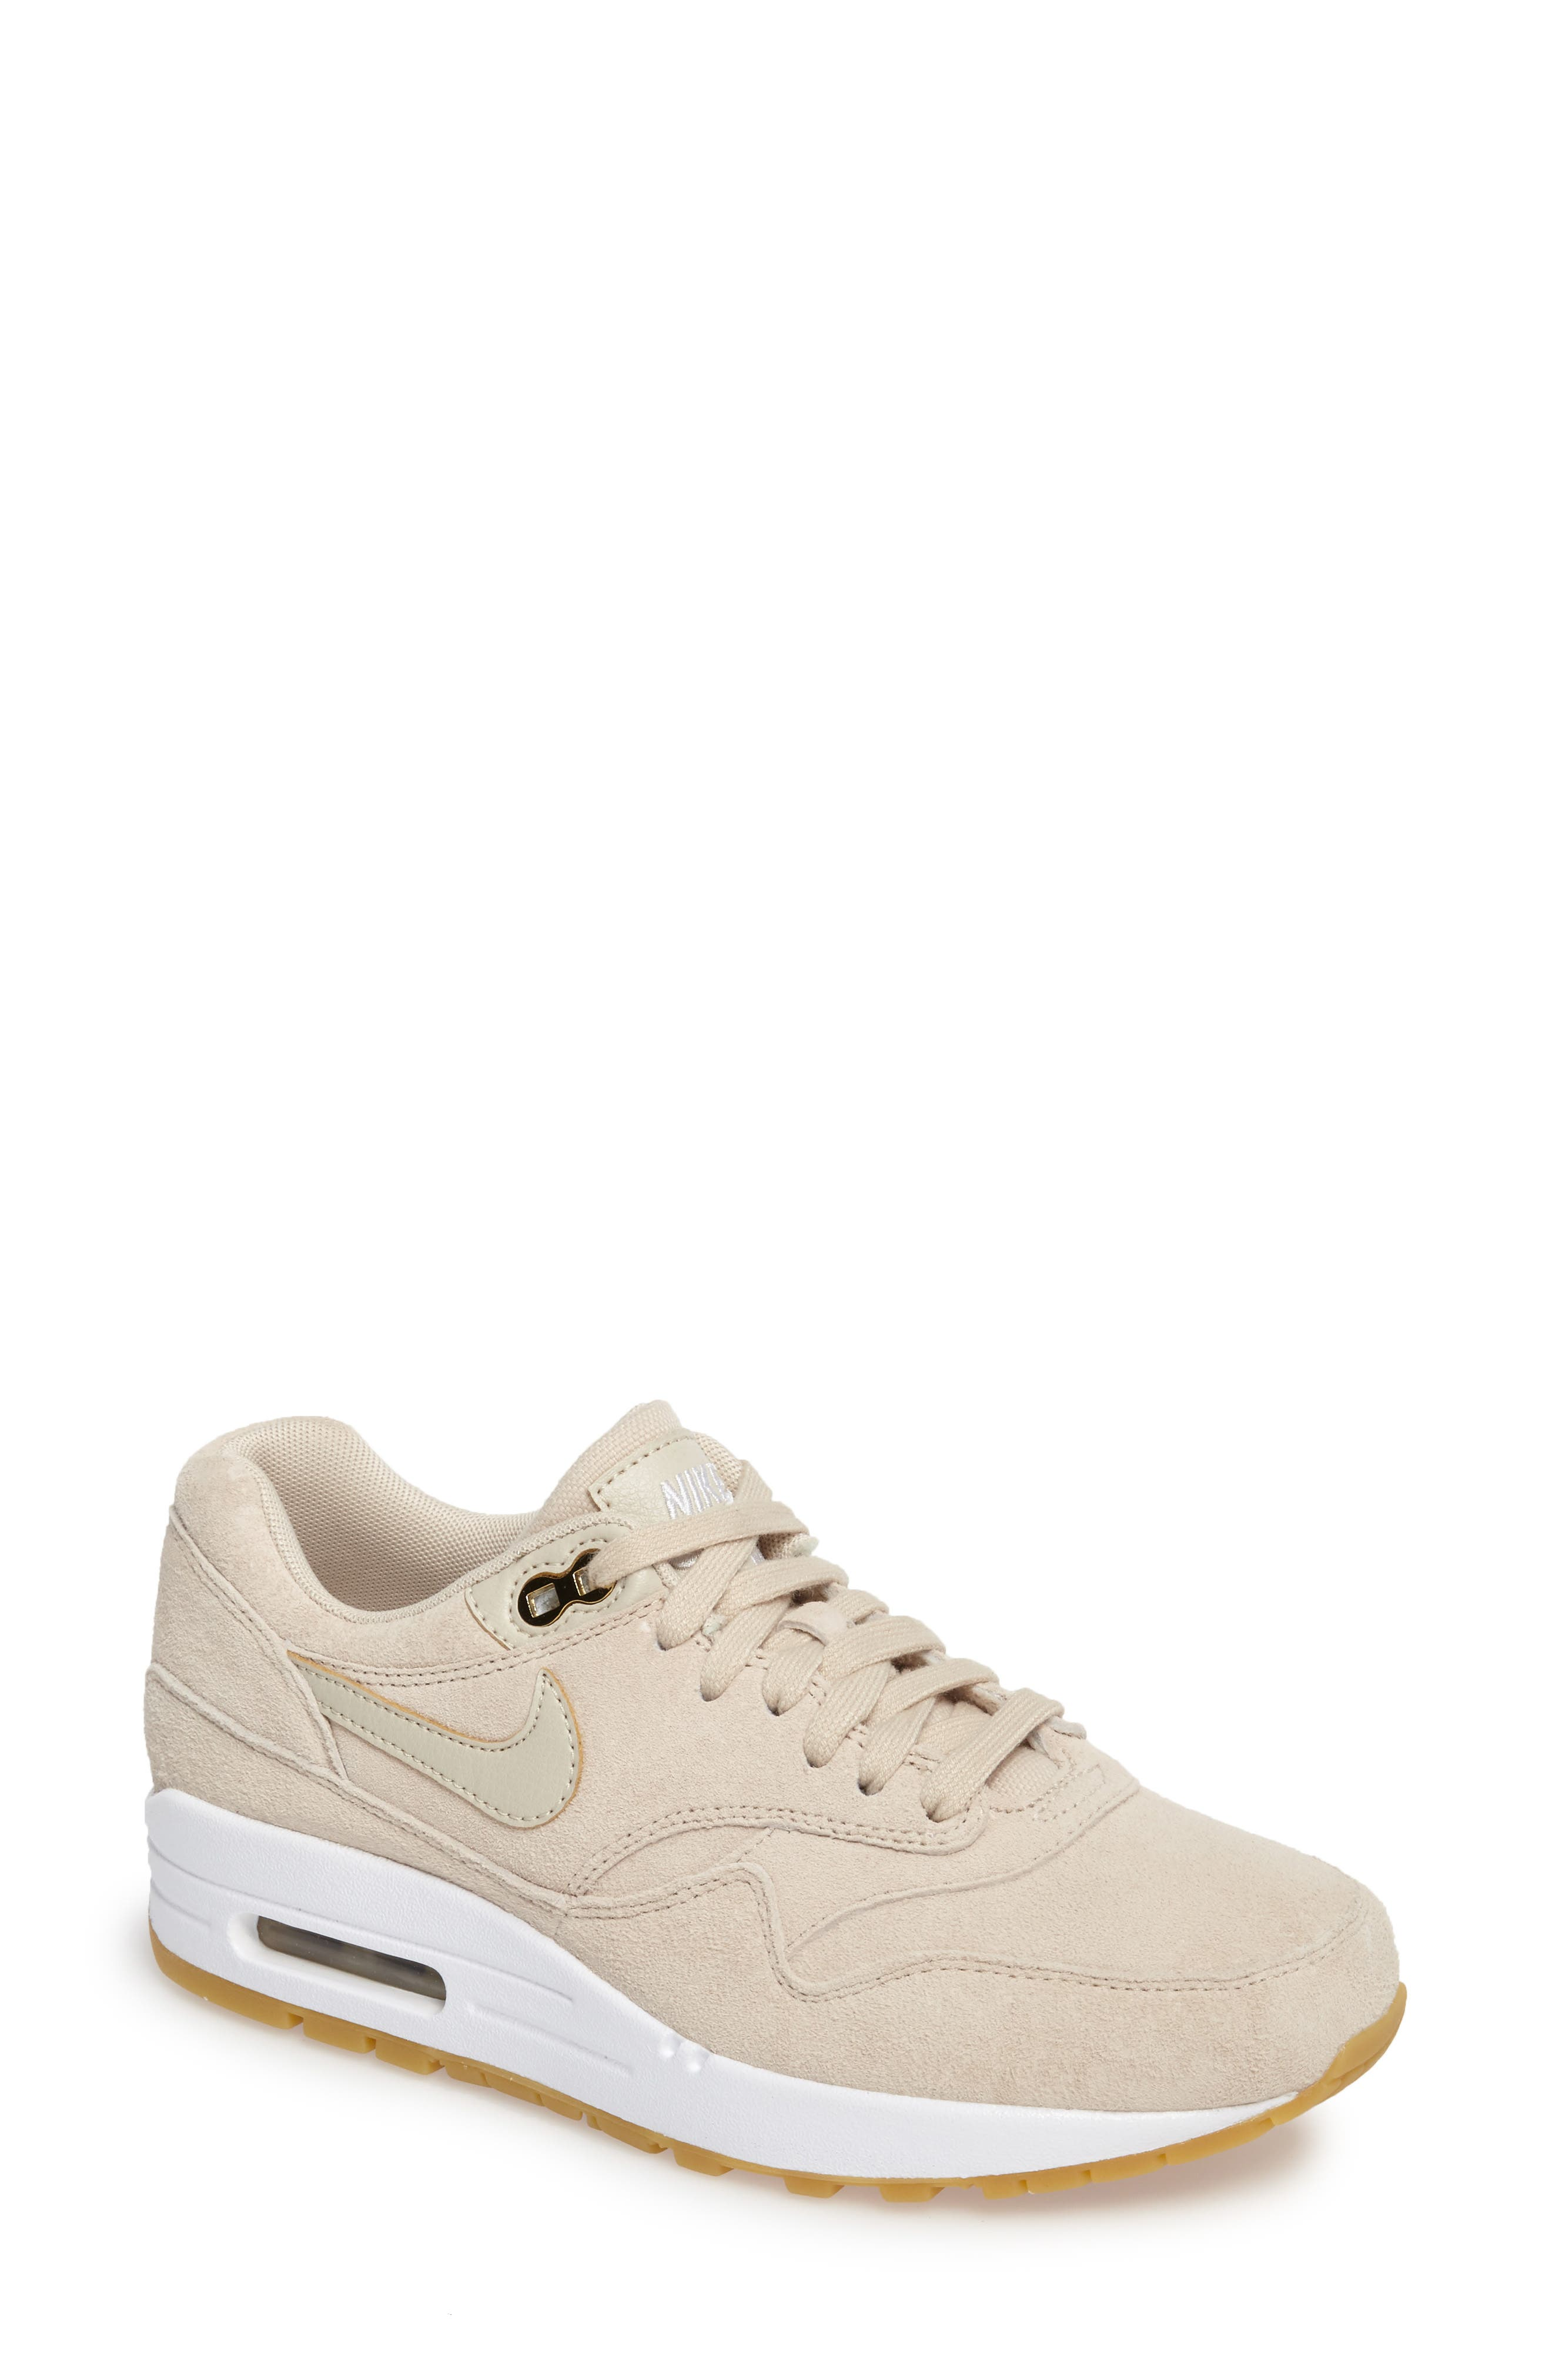 Main Image - Nike Air Max 1 SD Sneaker (Women)